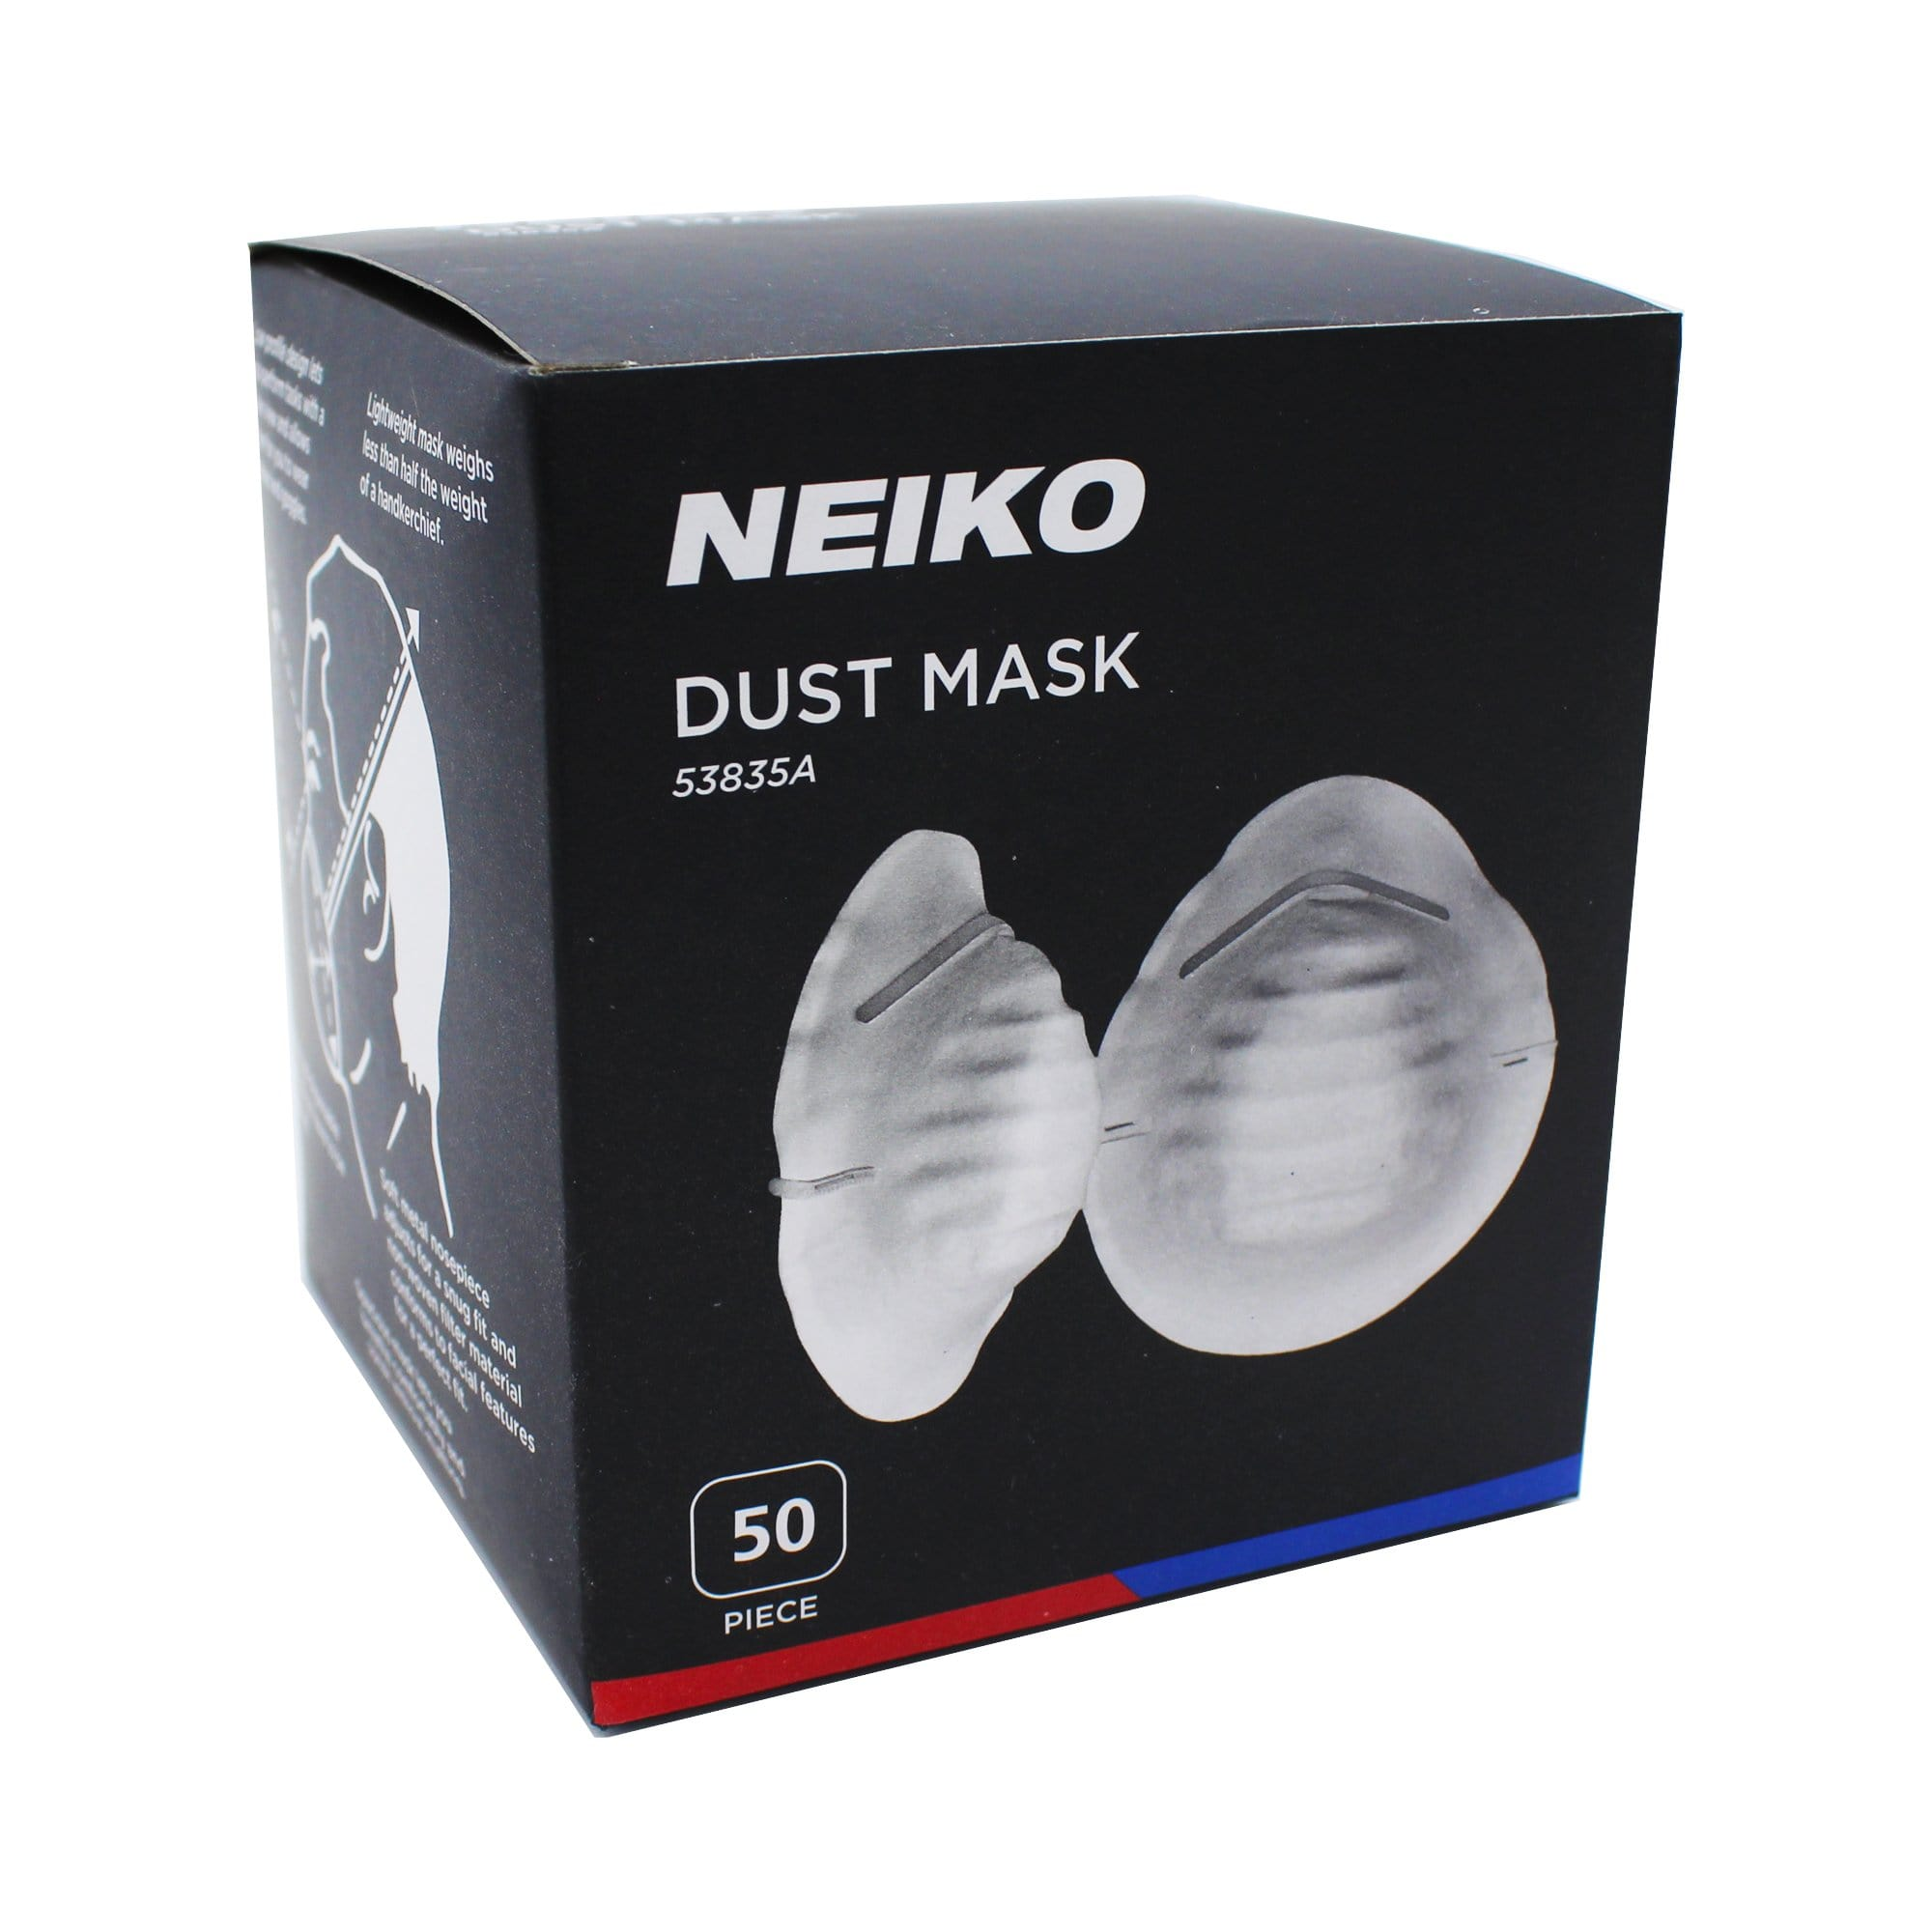 NEIKO Dust Mask Pack of 50